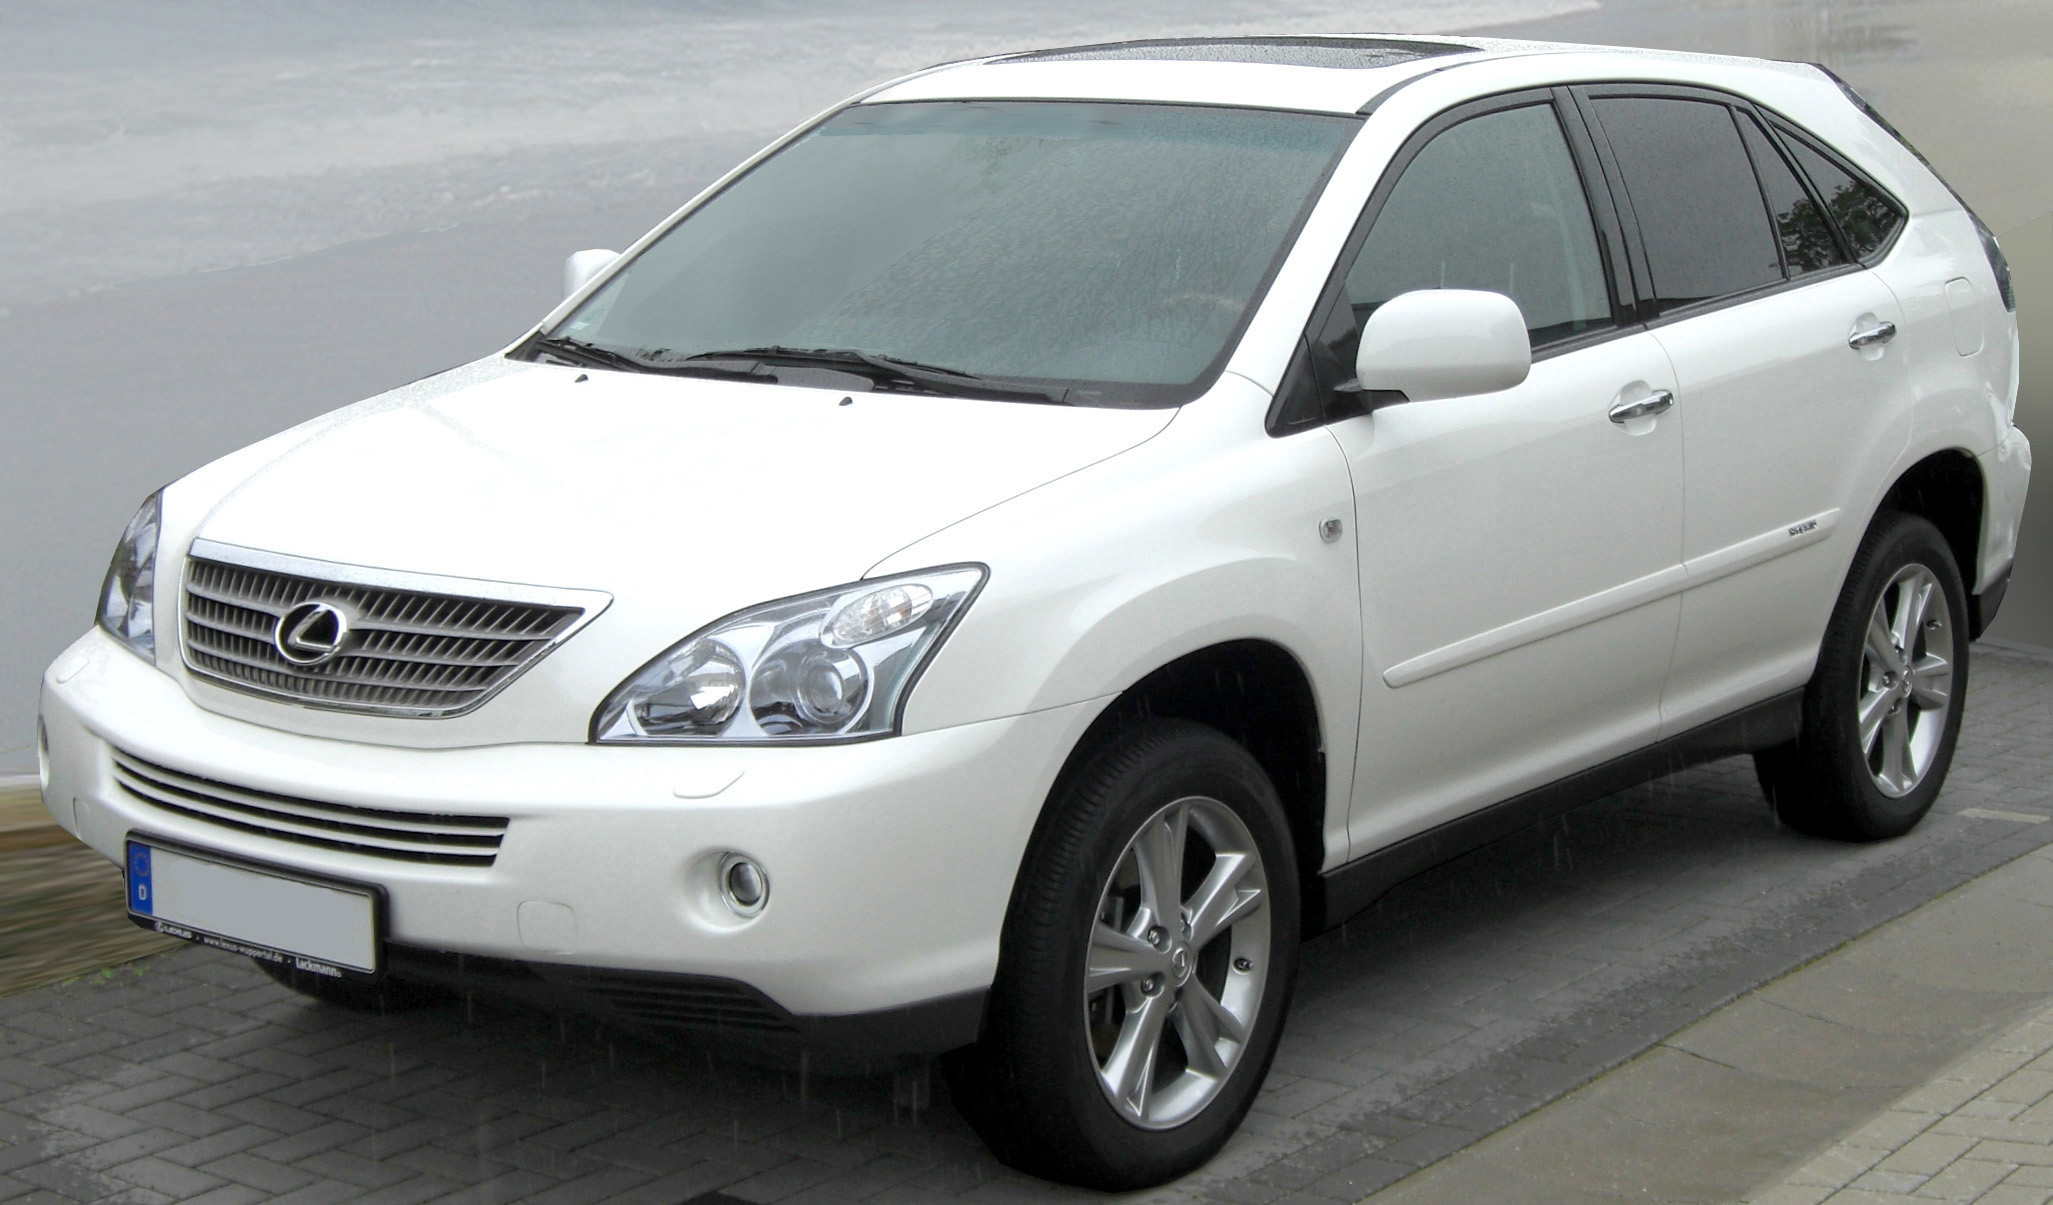 2008 Lexus RX 400h Information and photos ZombieDrive